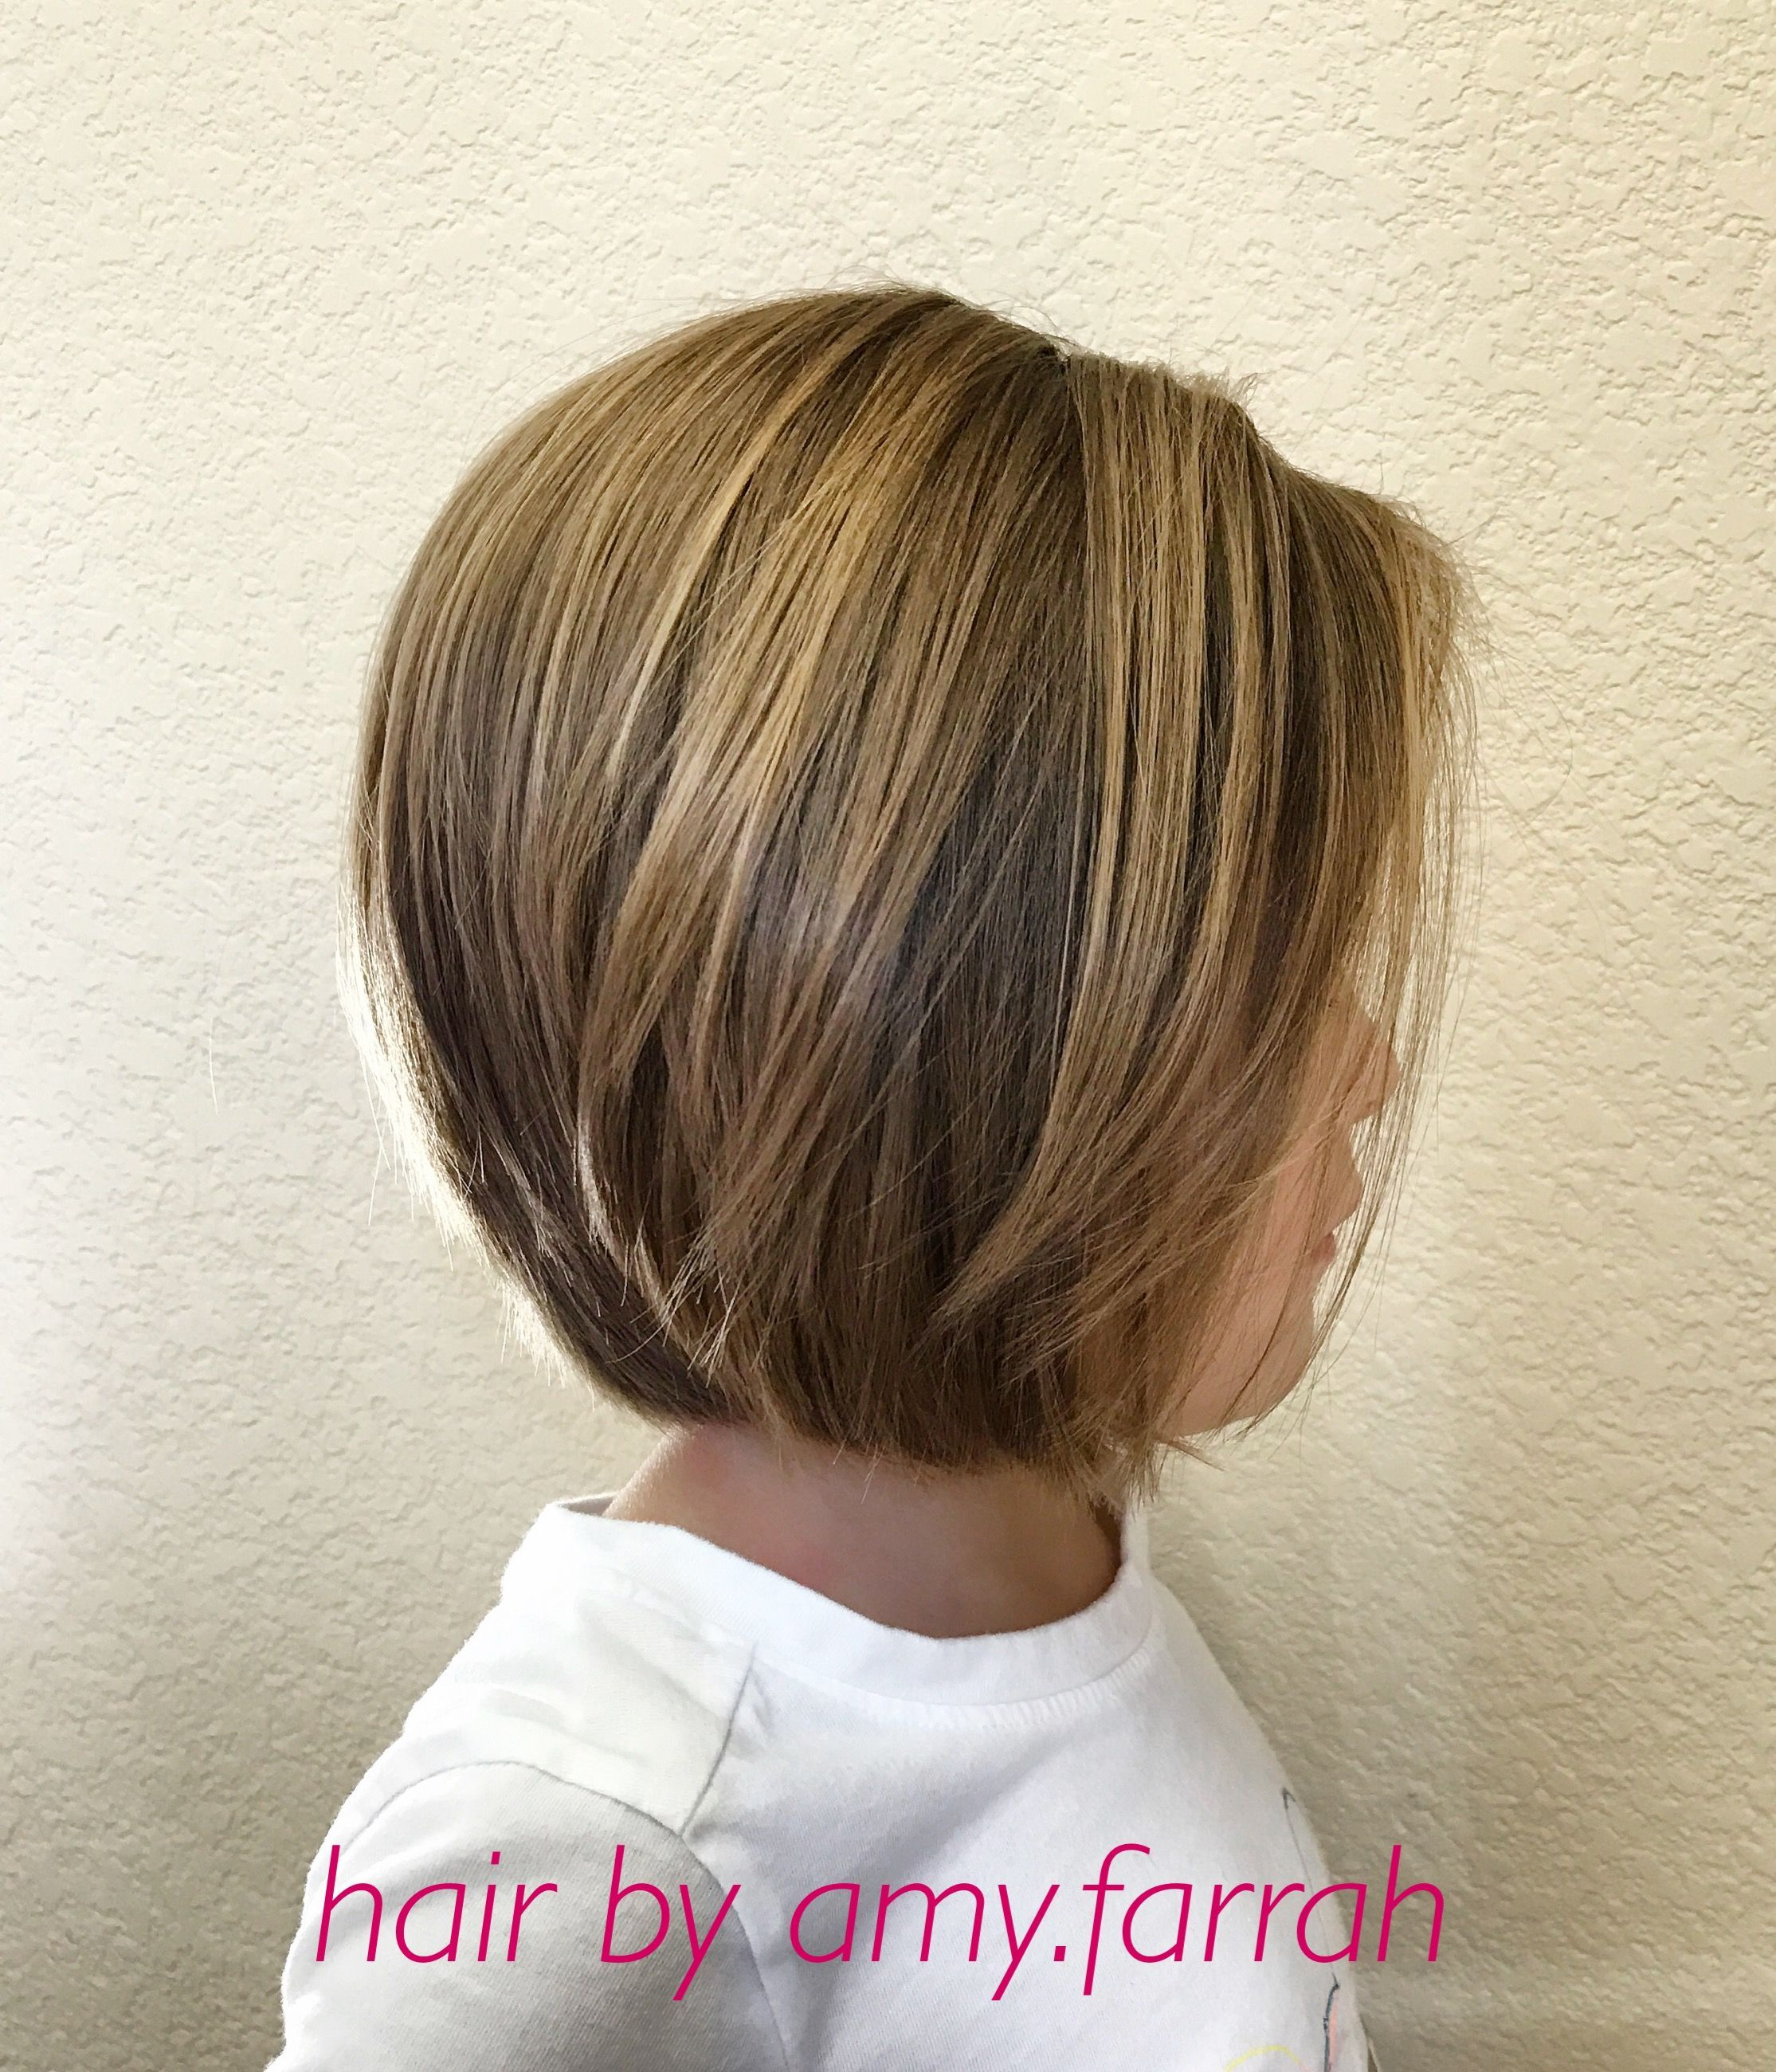 Current Short Hairstyles Cute Short Hairstyles For Little Girls Easy Little Girl Hairdos Little Girl Bob Haircut Bob Haircut For Girls Little Girl Haircuts